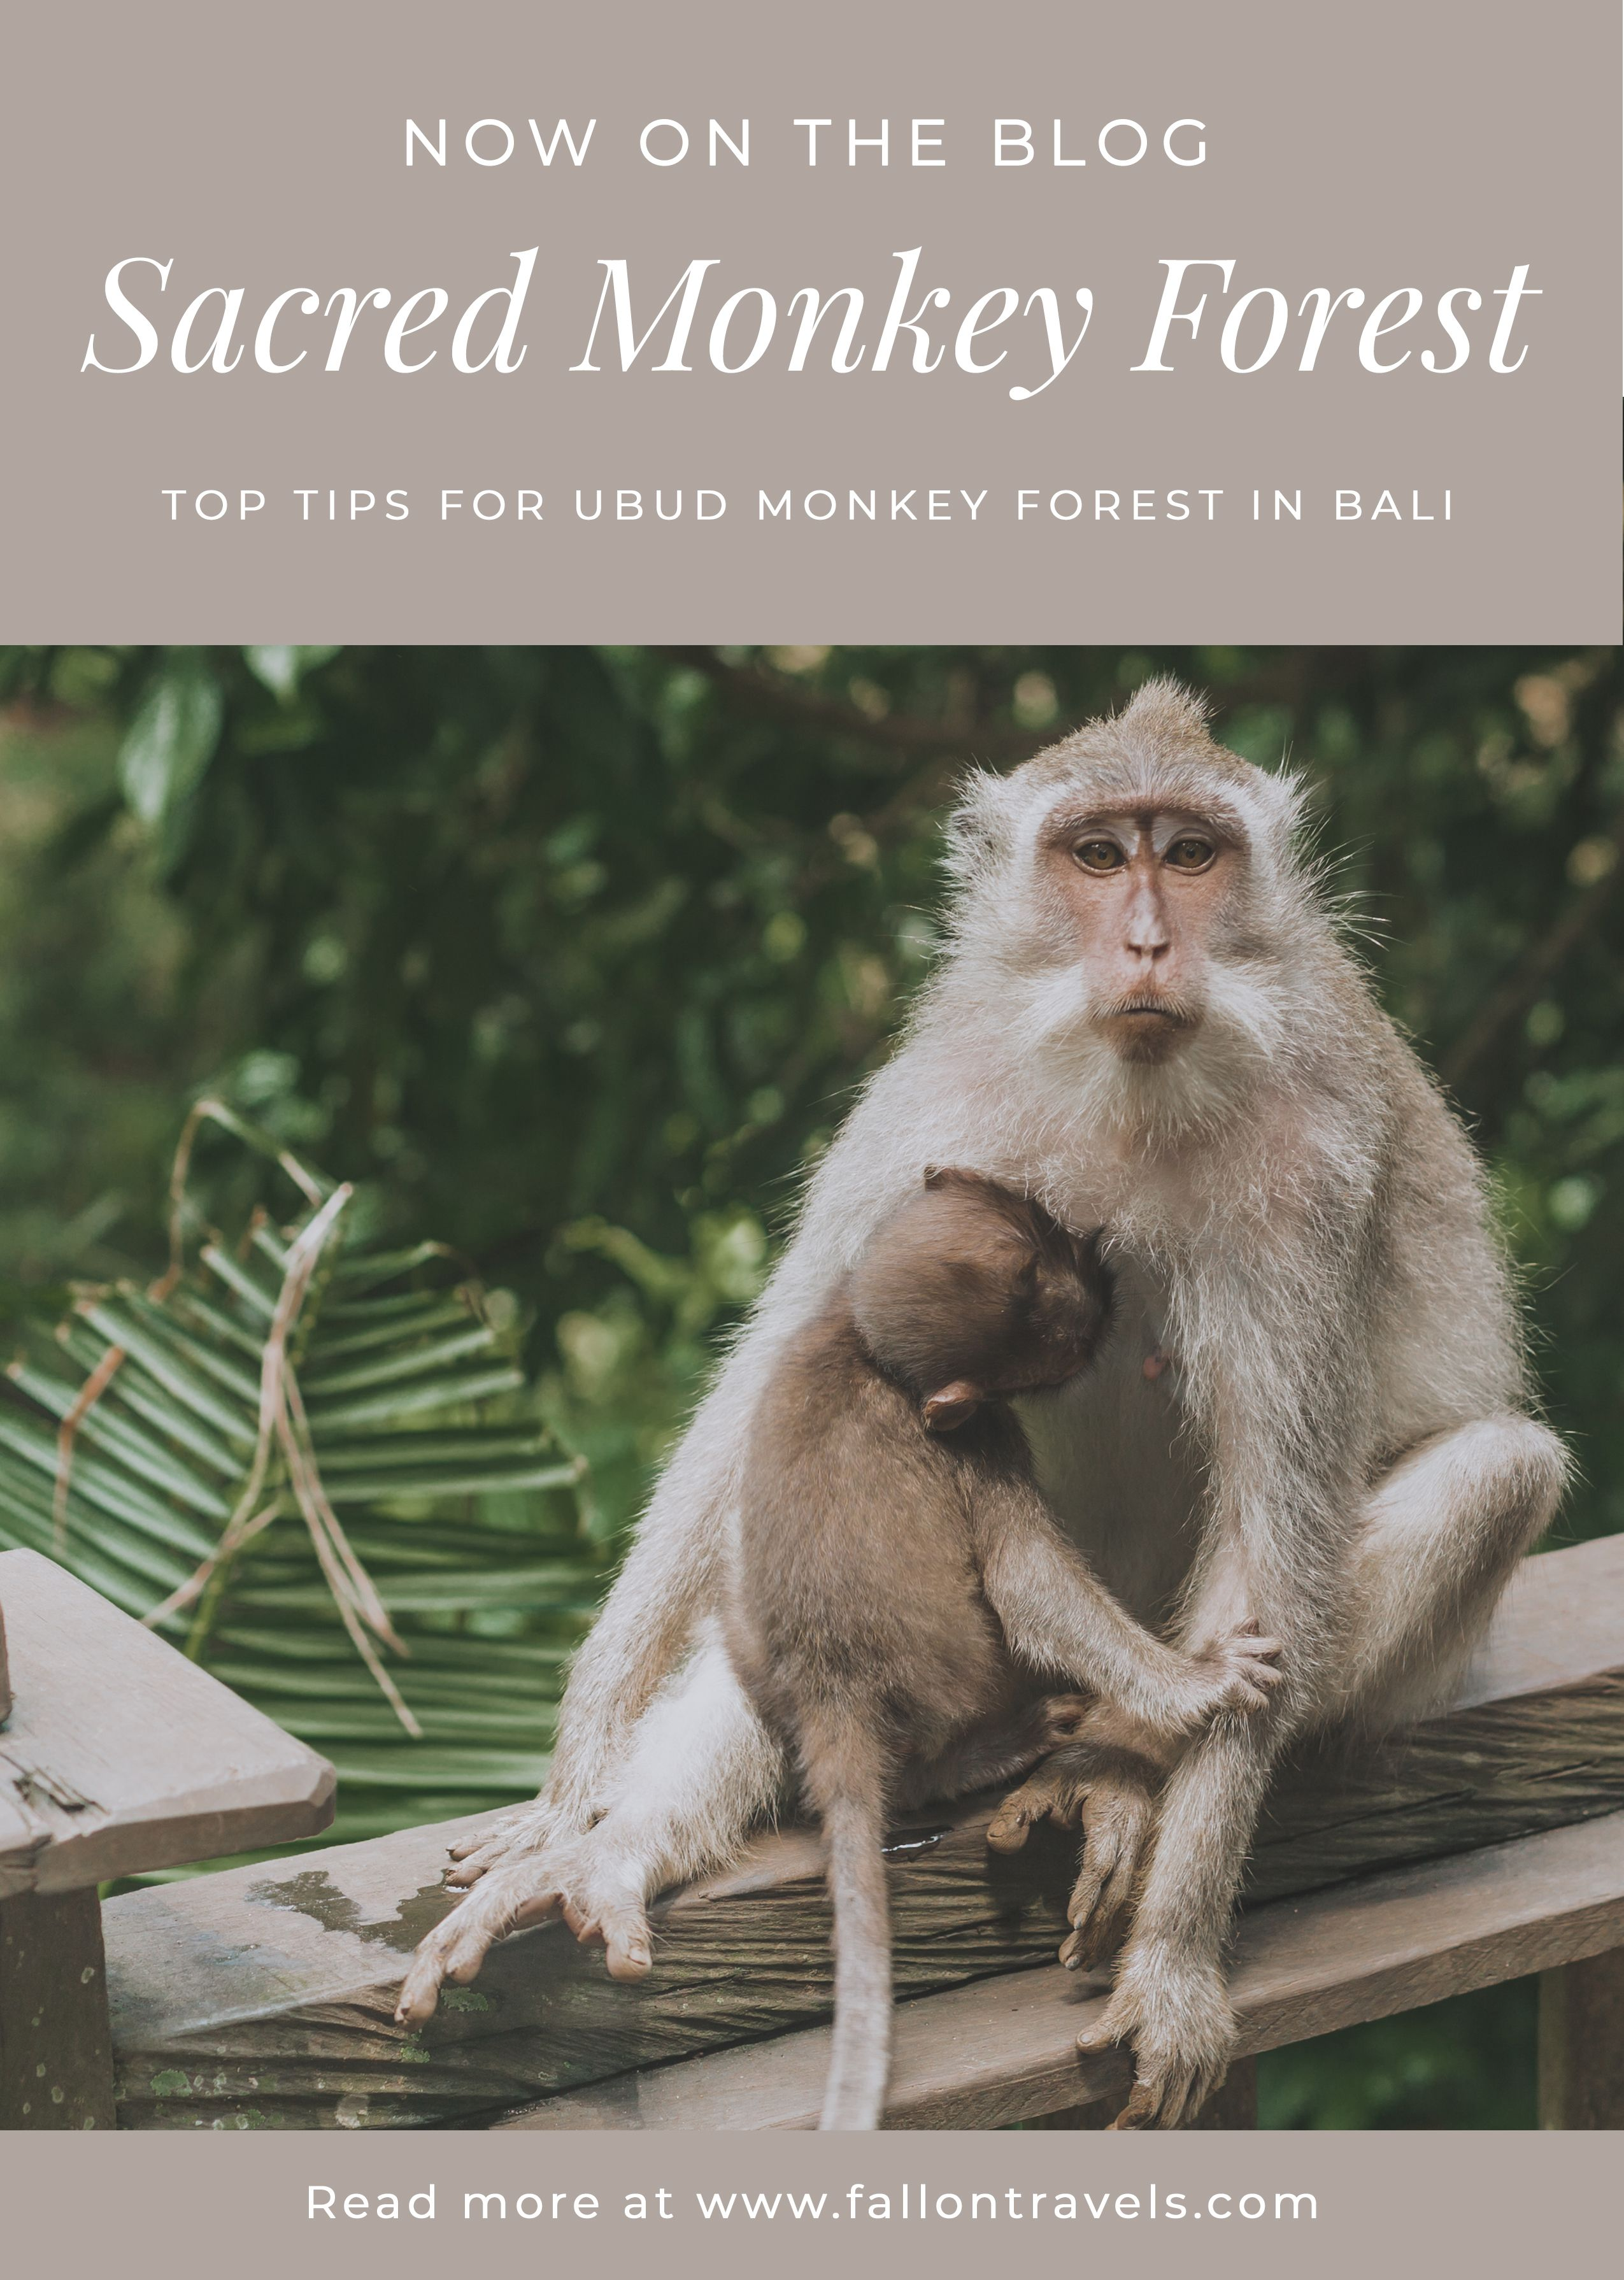 Top 8 tips for Ubud Monkey Forest in Bali, Indonesia